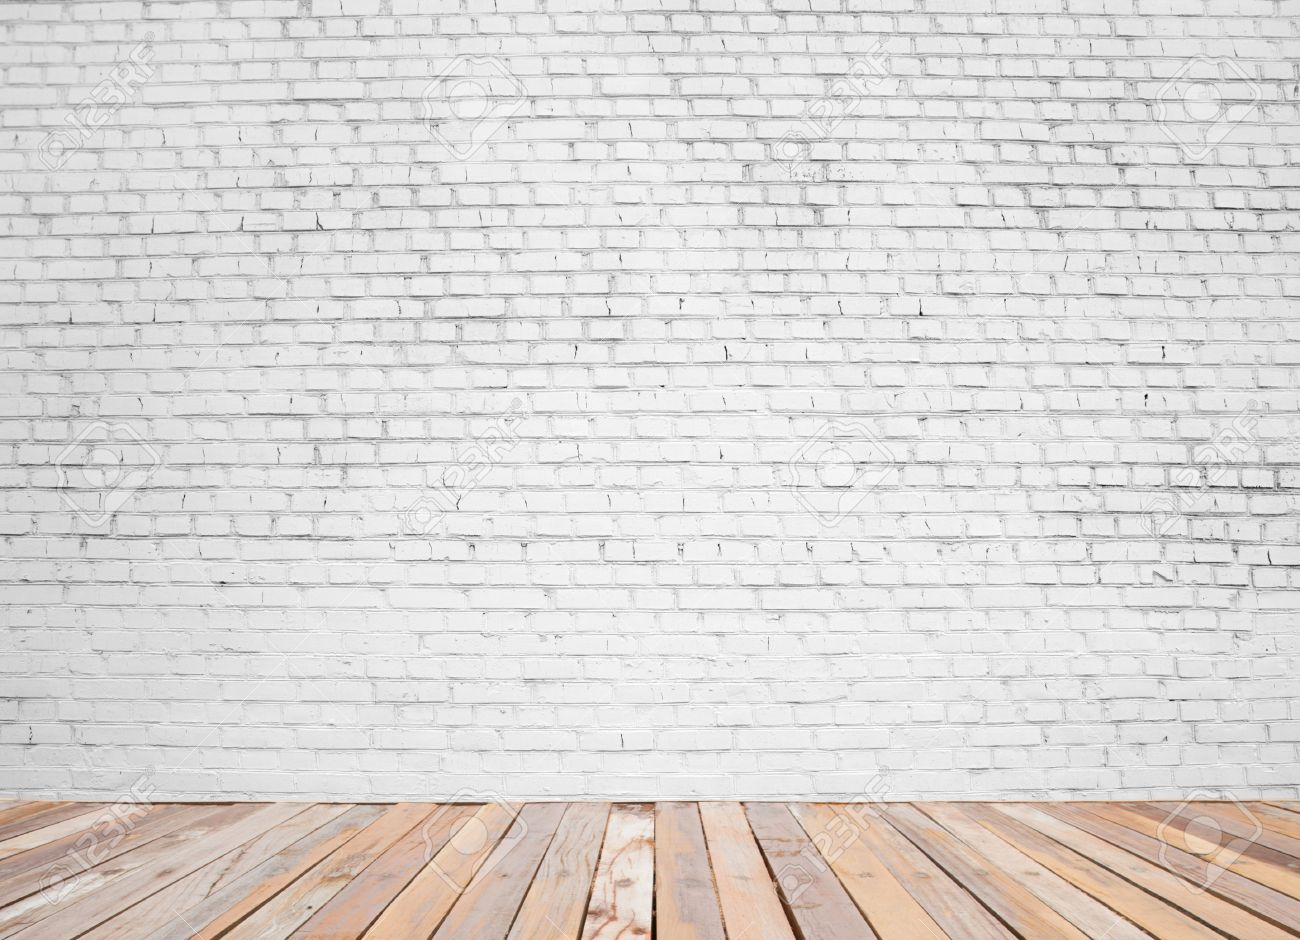 White Brick Wall And Wood Floor Background Stock Photo Picture And Royalty Free Image Image 29142519